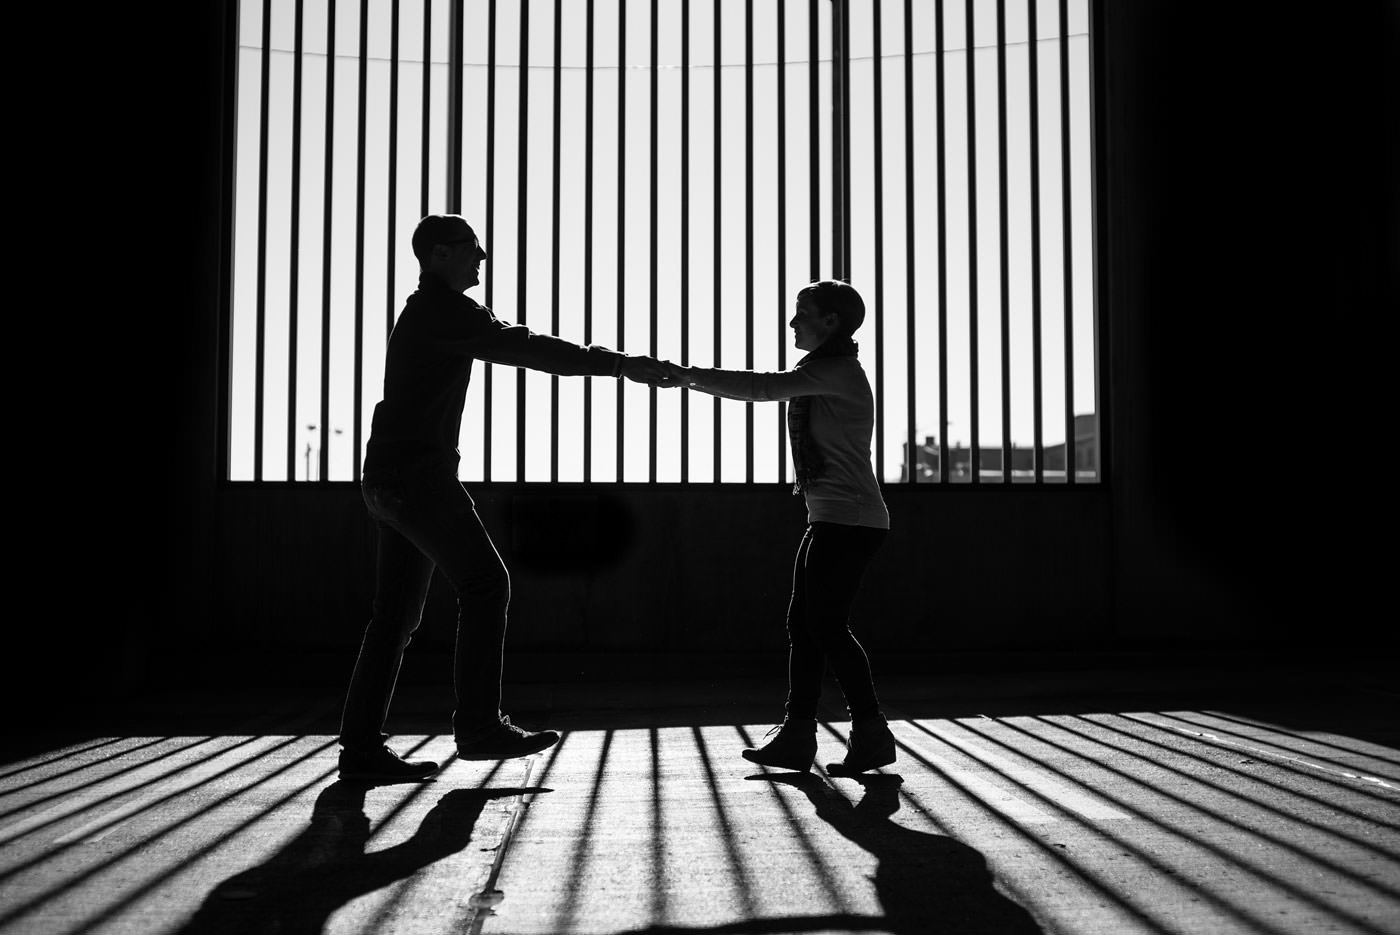 dancing in the shadows creative black and white engagement portrait